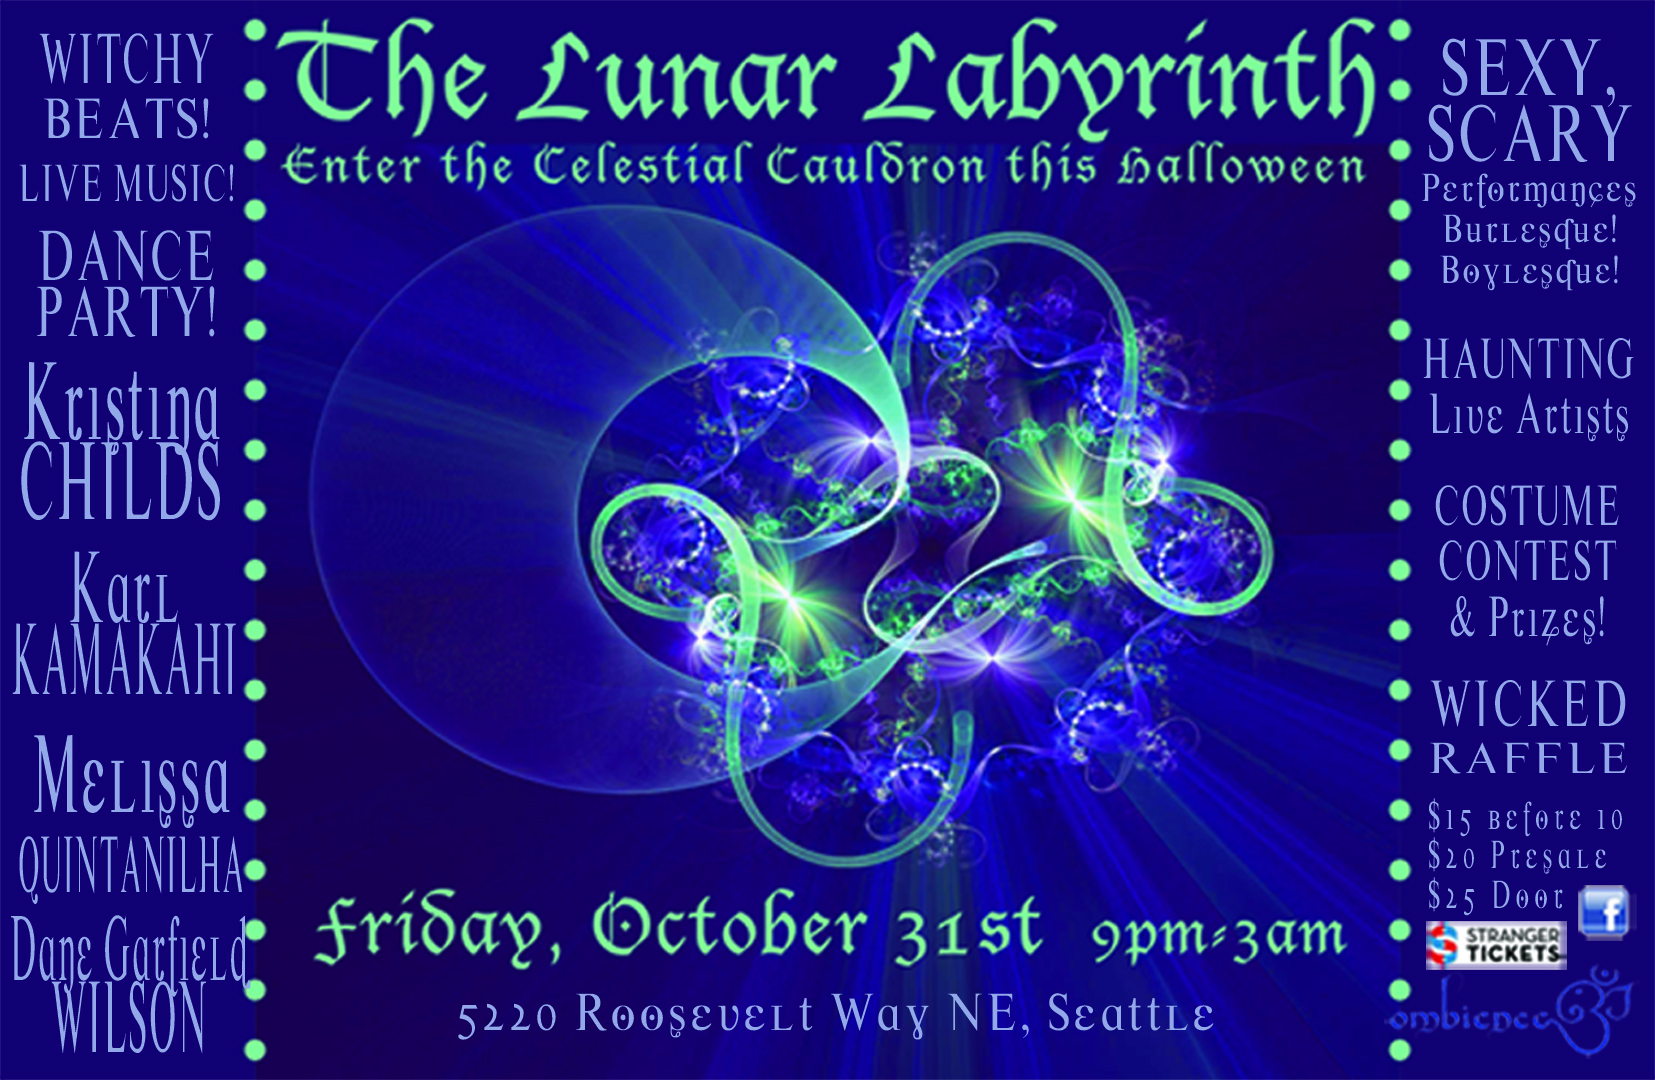 the lunar labyrinth : journey into the celestial cauldron this